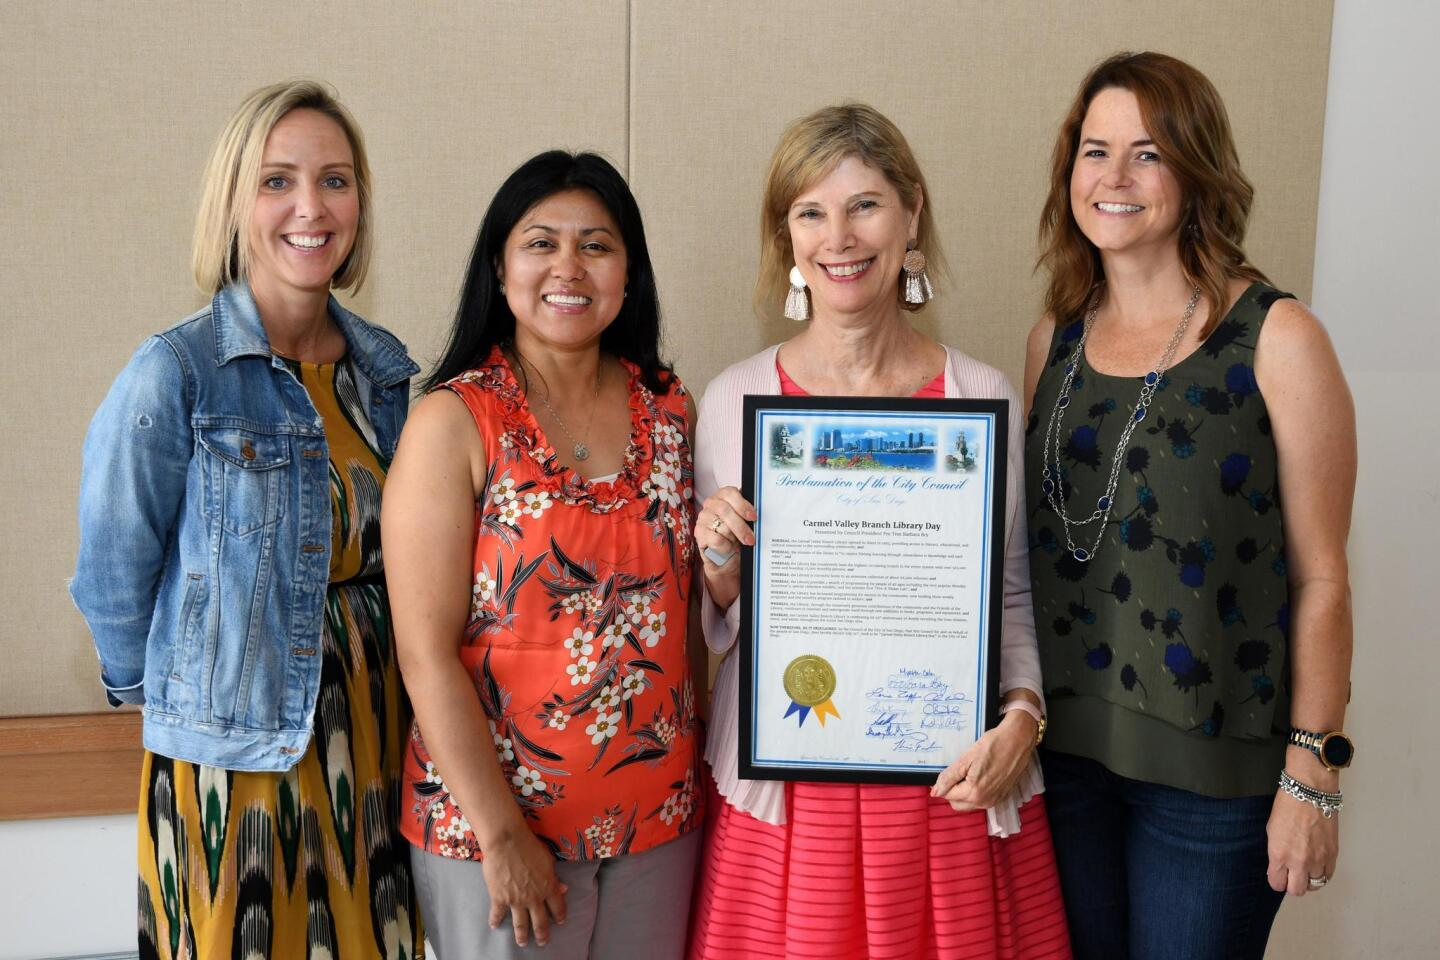 Carmel Valley Library 25th Anniversary Celebration